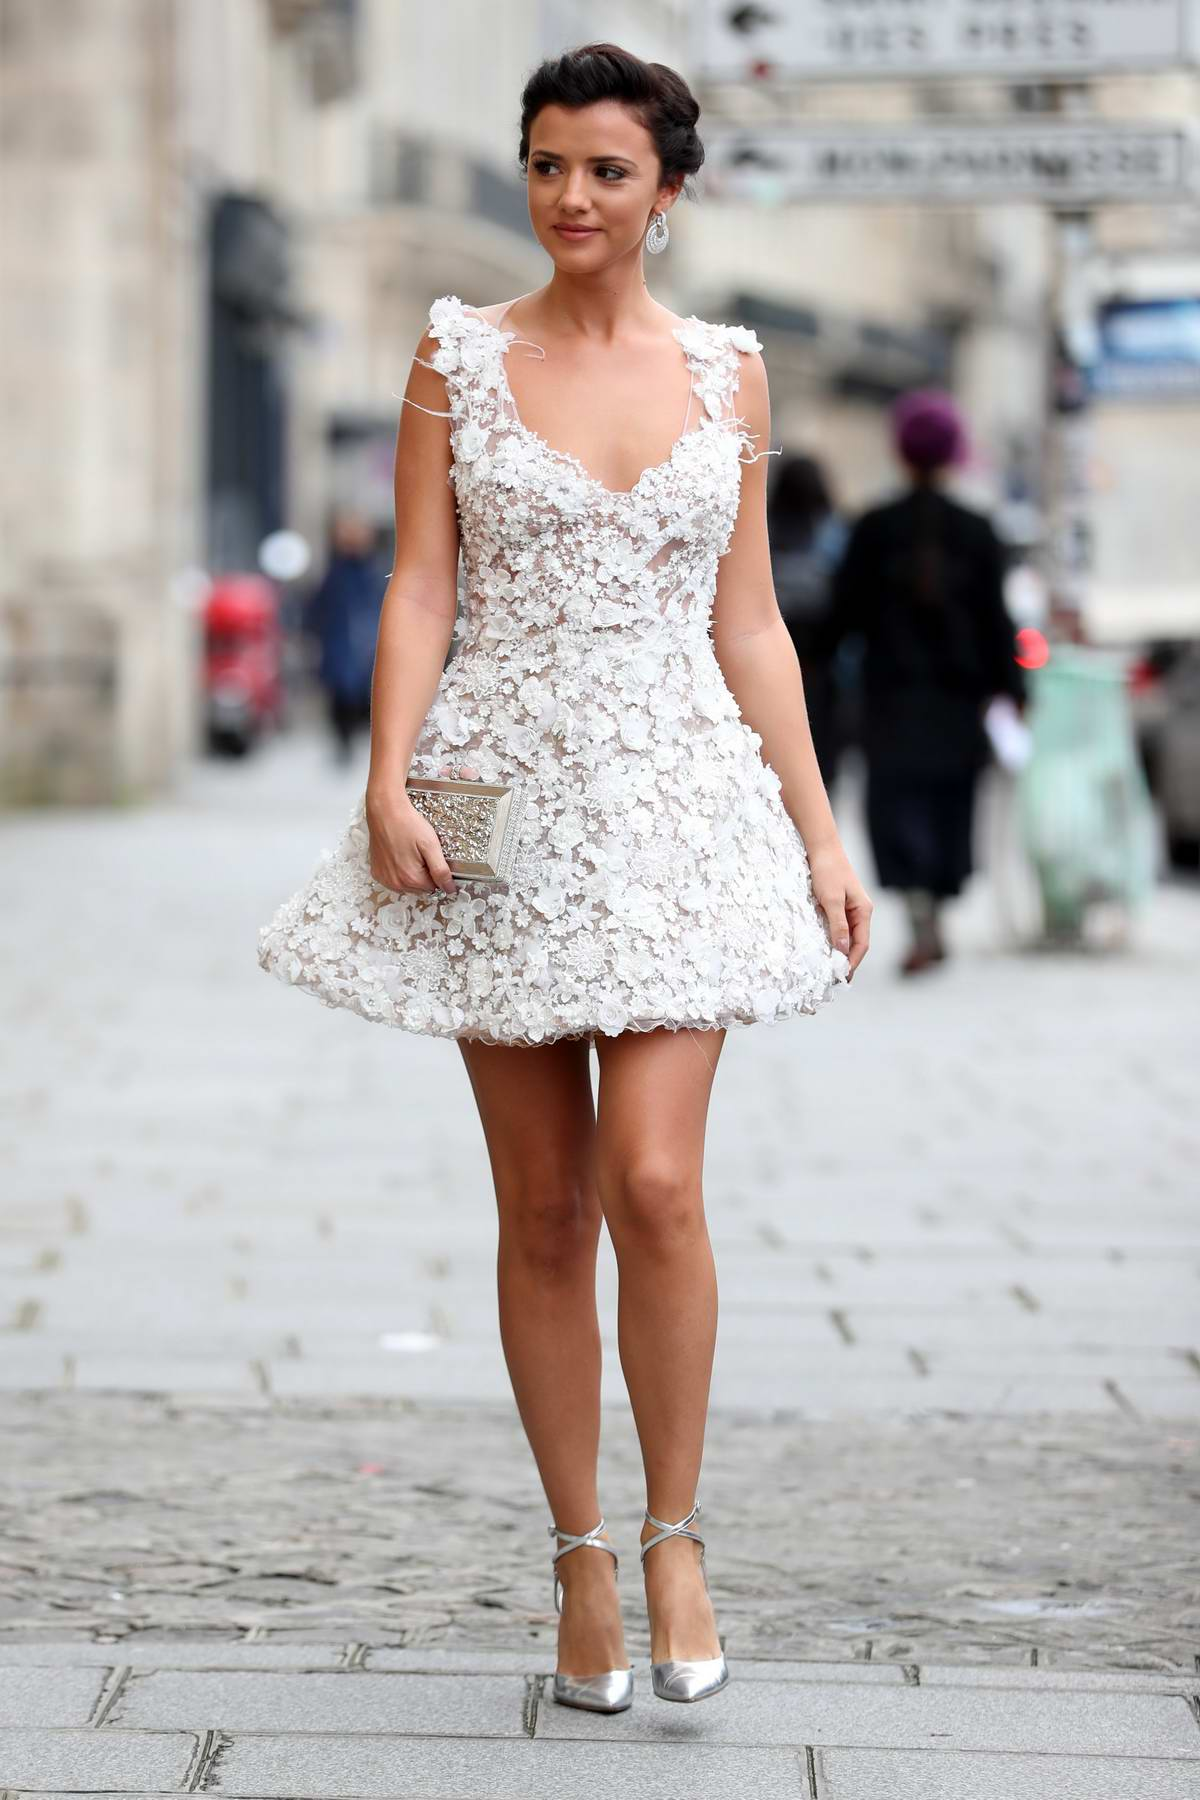 Lucy Mecklenburgh arriving at Galia Lahav Fashion Show at Paris Fashion Week in Paris, France